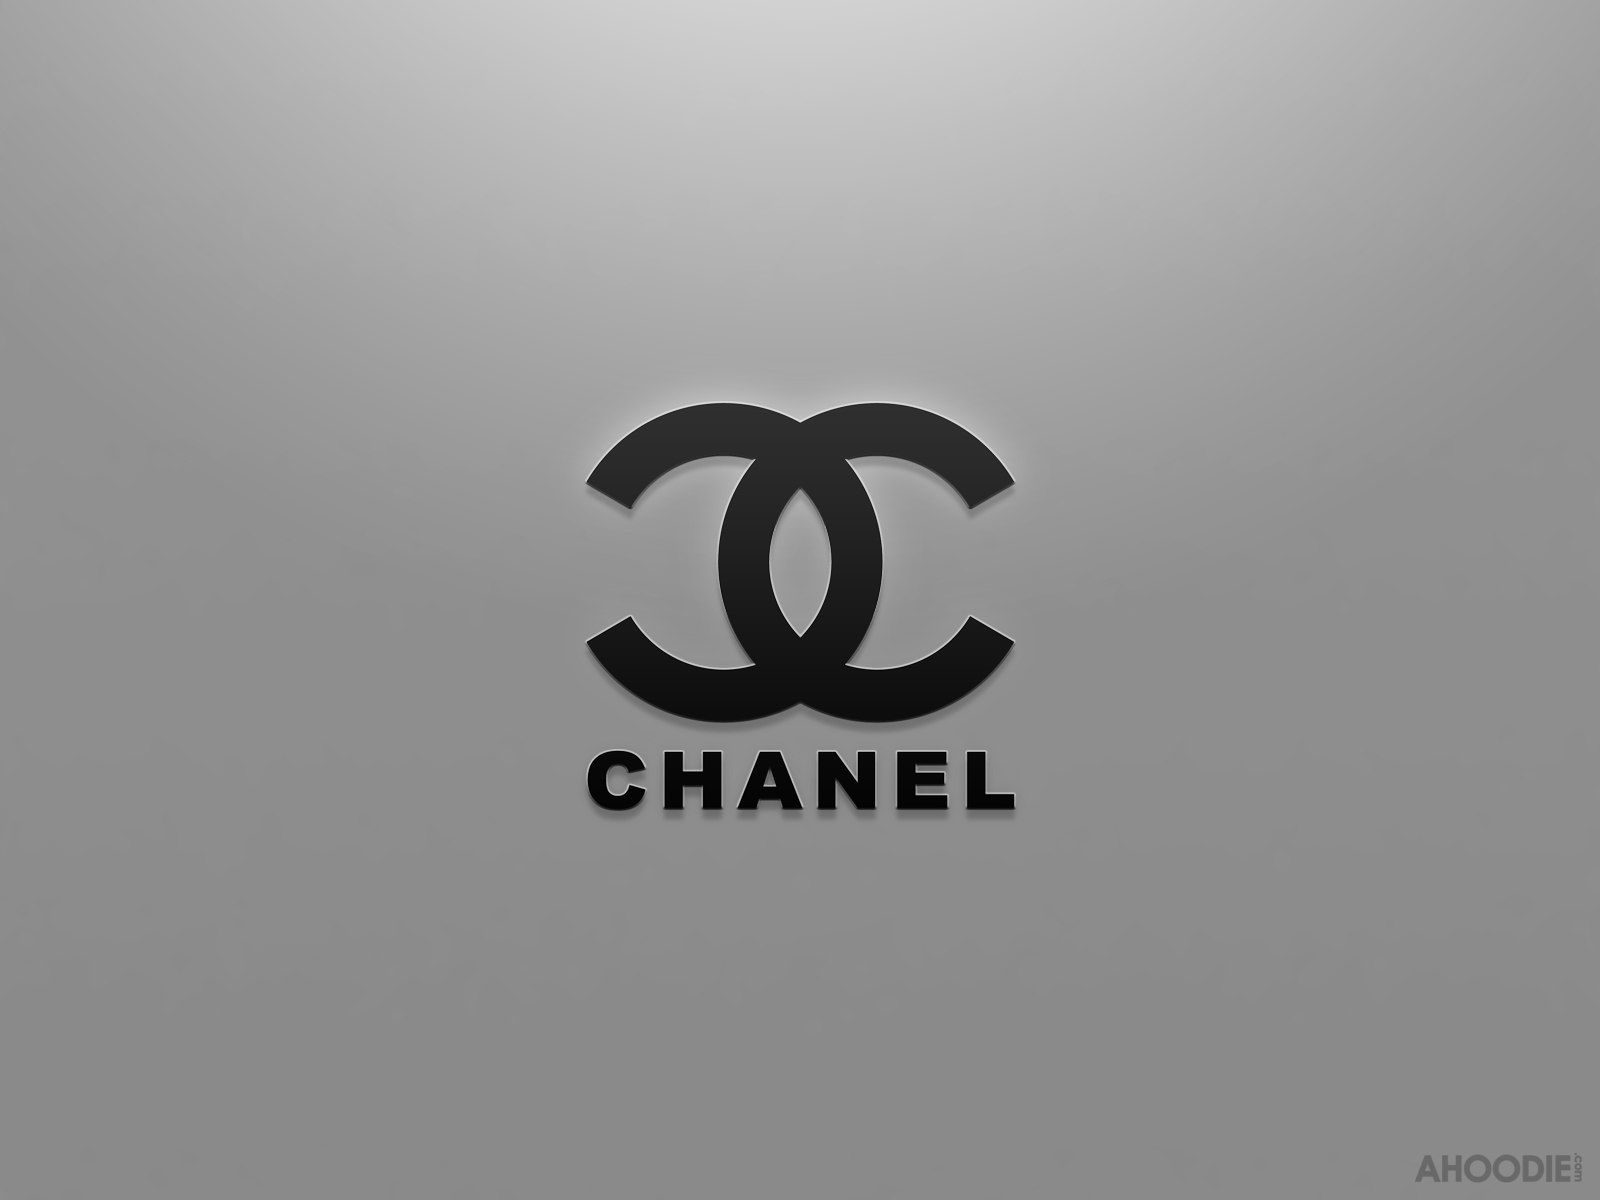 chanel wallpapers logo quality41jpg 1600x1200